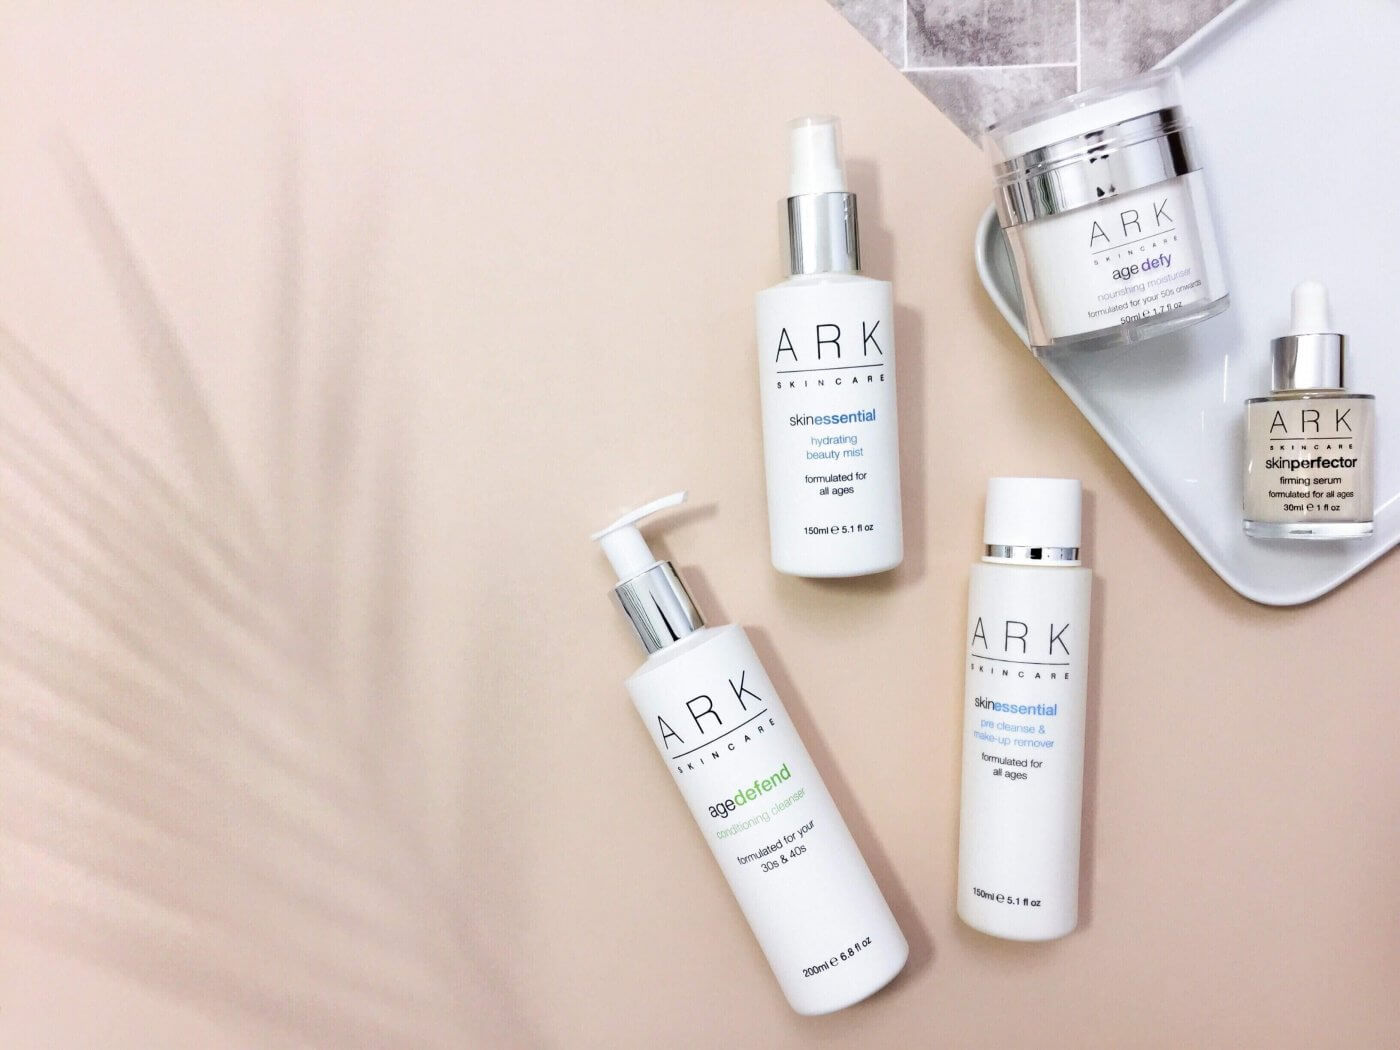 Ark Skincare Products | The Mustcard